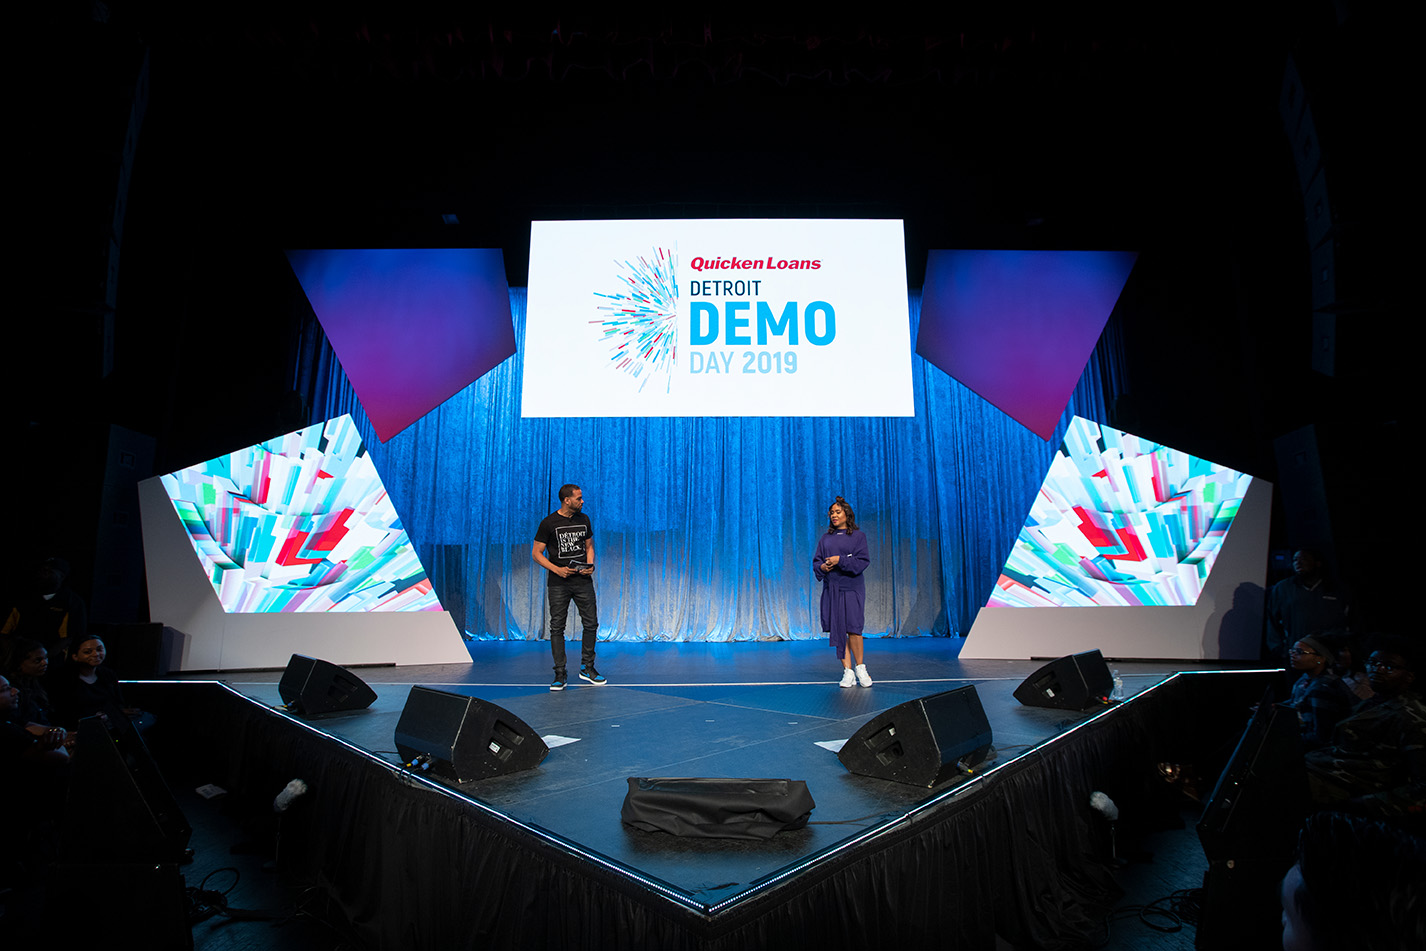 Detroit Demo Day - One Day  One City  One Million Dollars